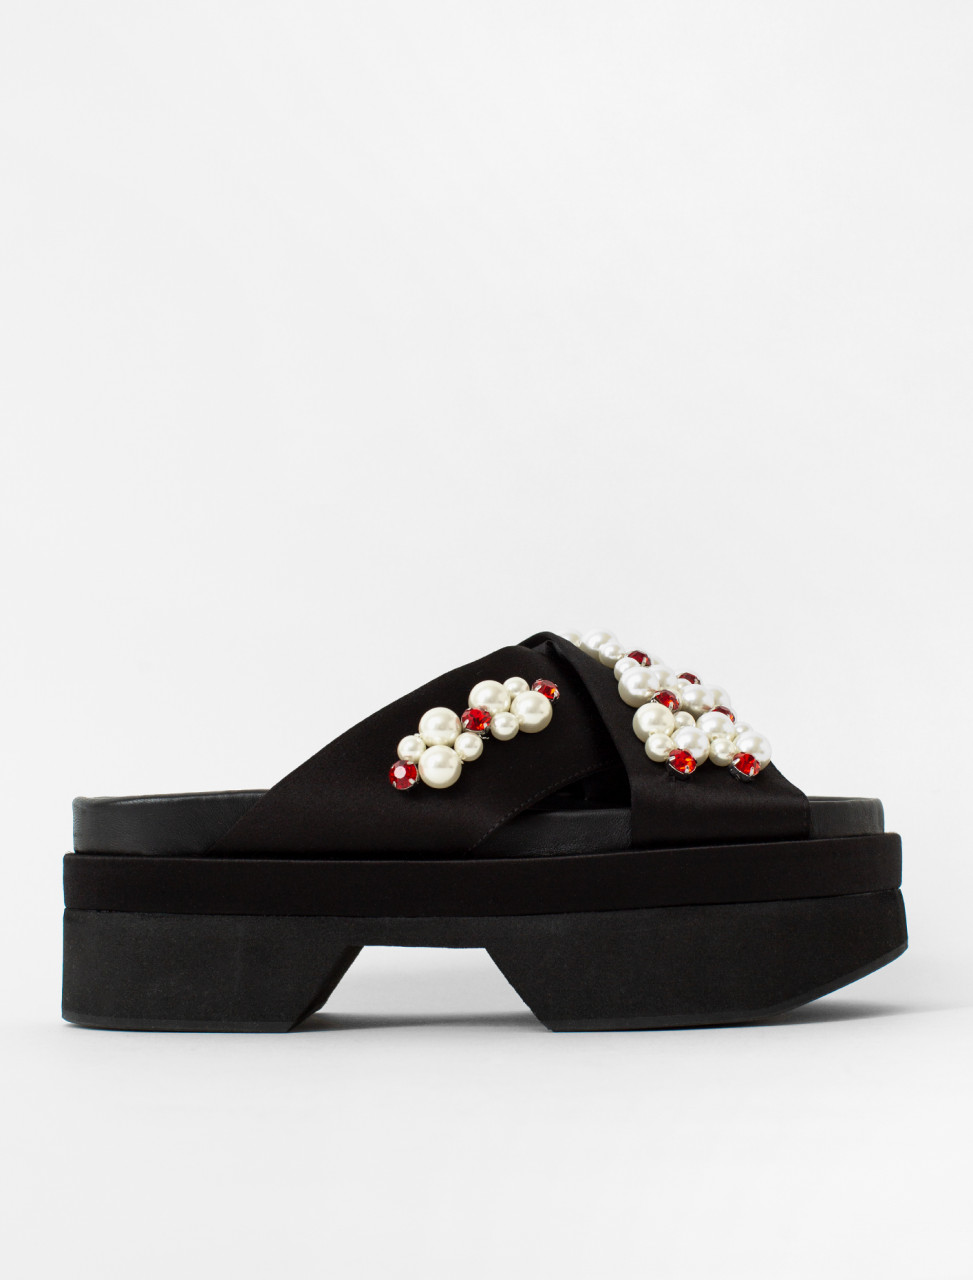 Simone Rocha Japanese Slide with Beading